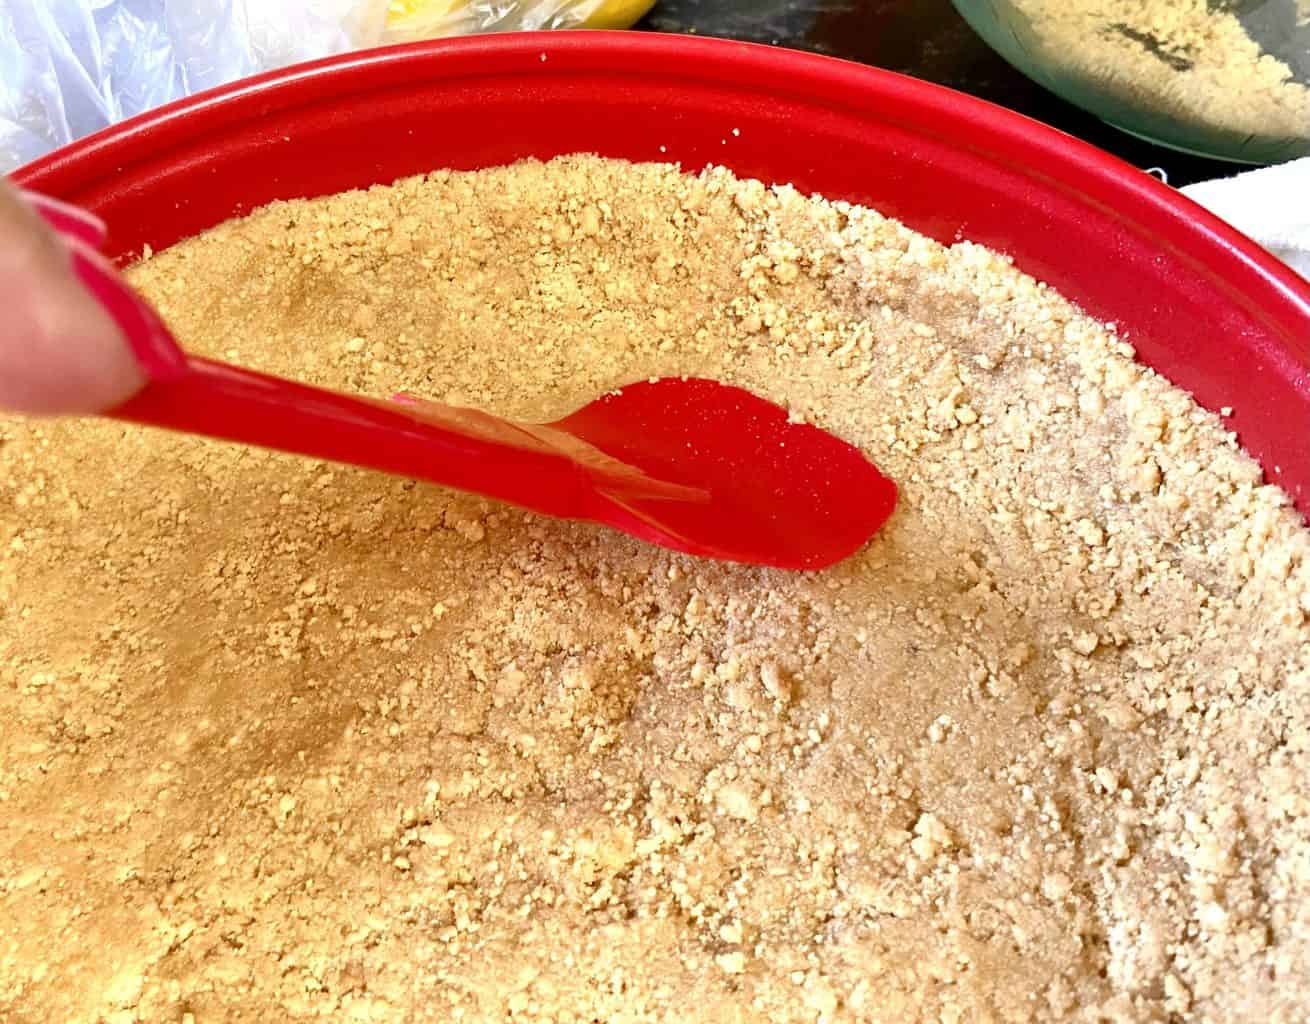 Graham cracker crust being pressed into pan with spatula.